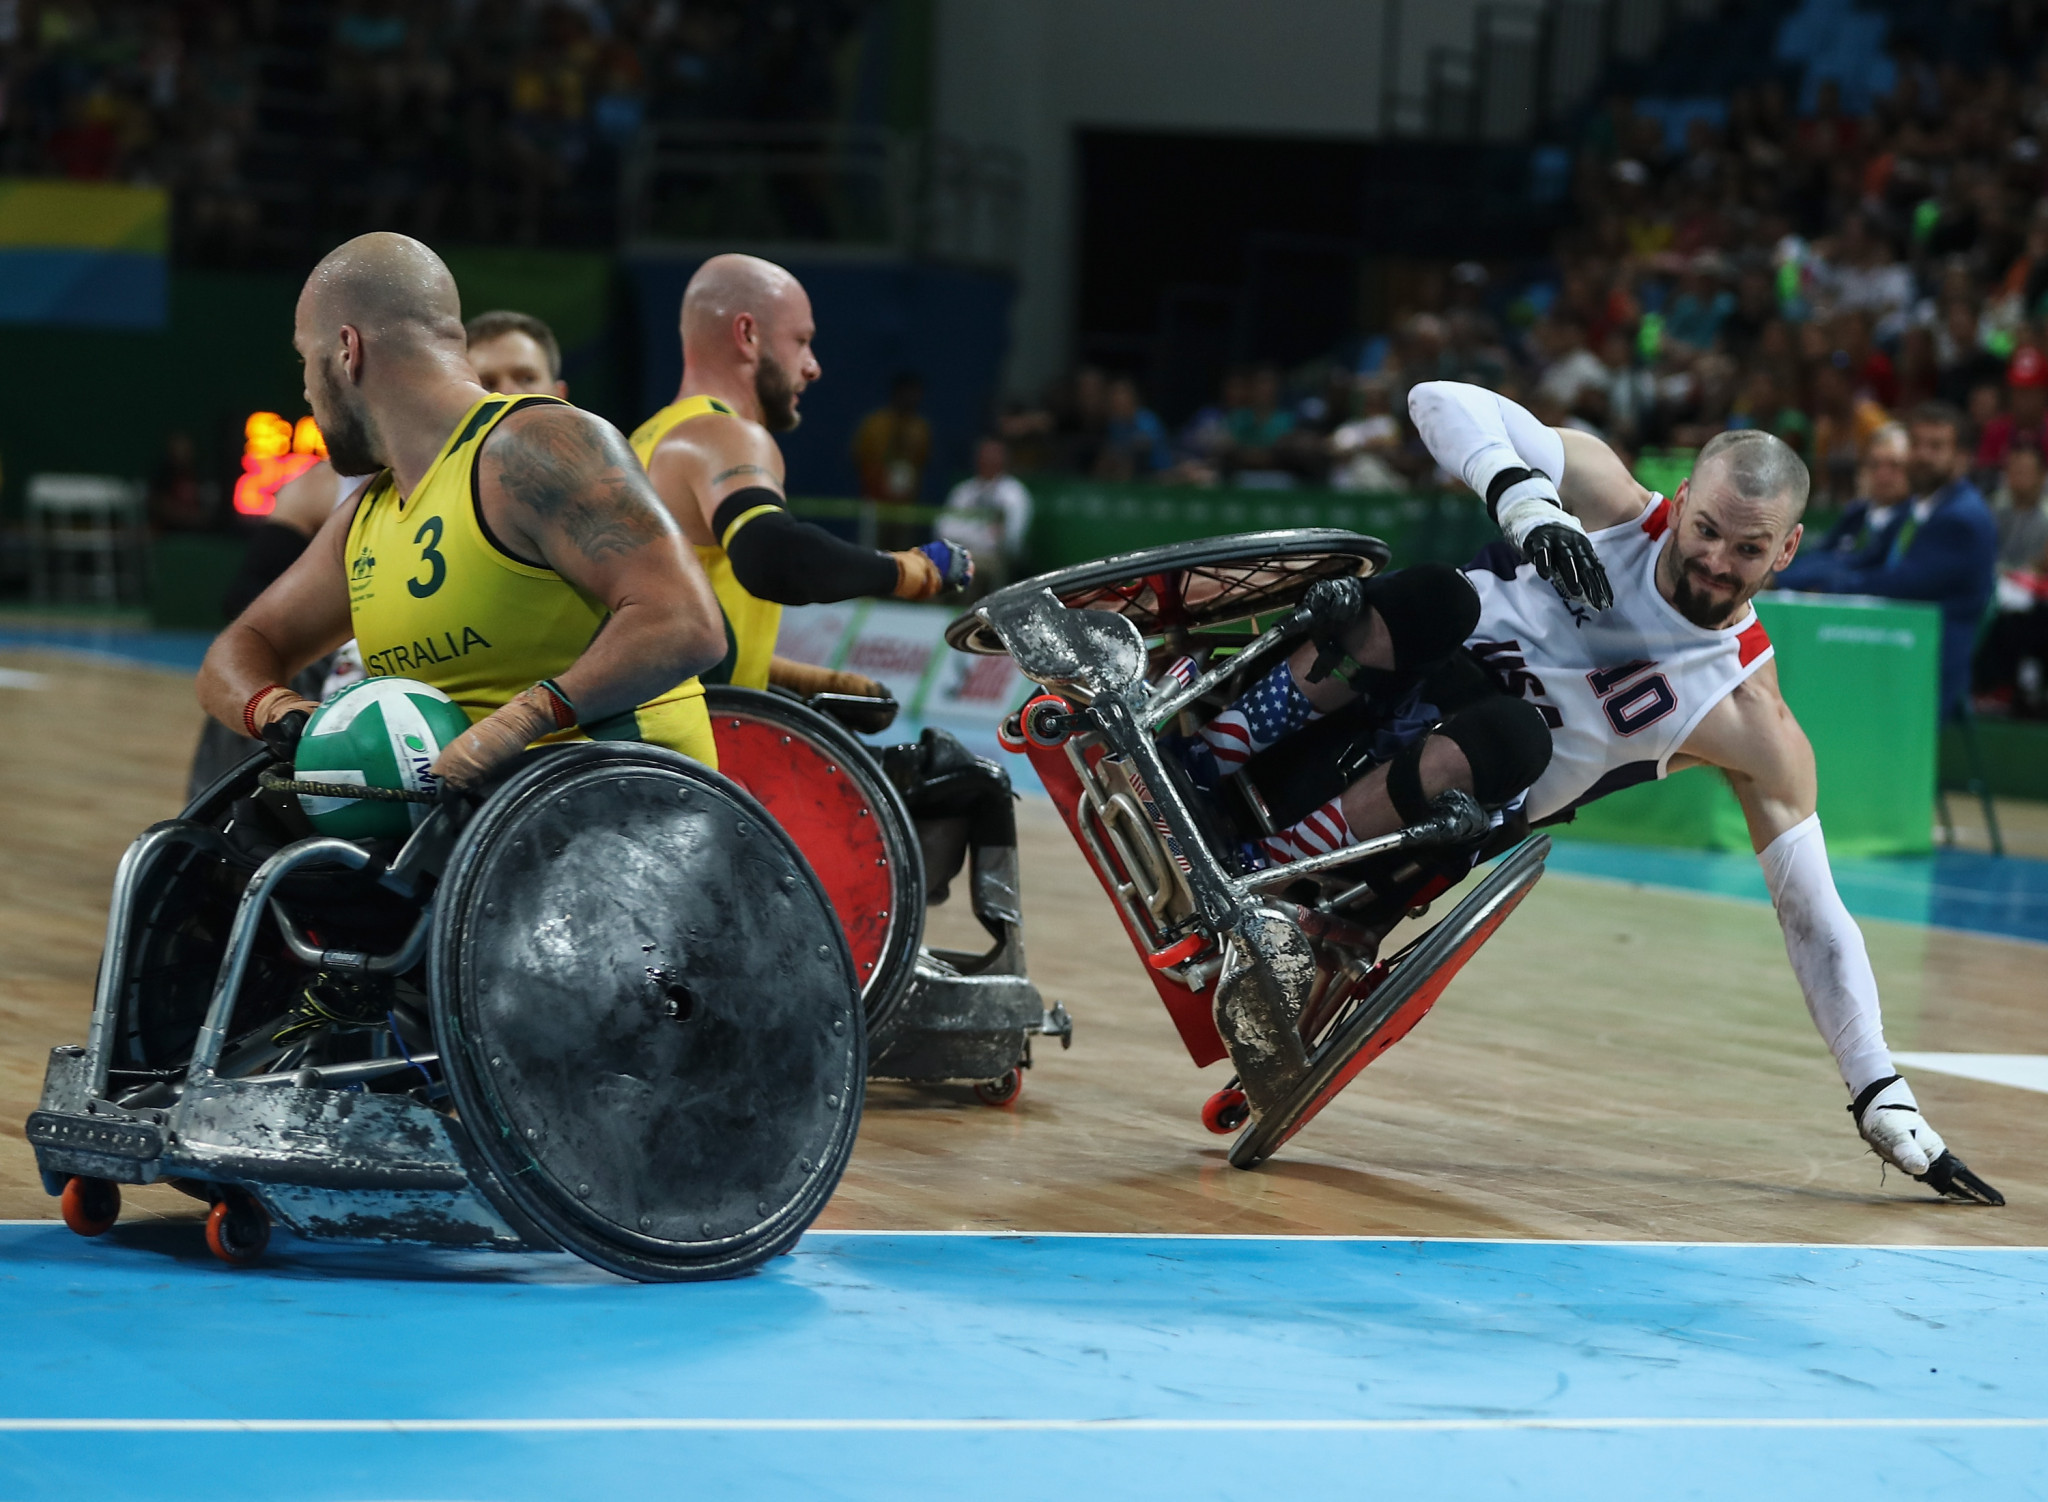 International Wheelchair Rugby Federation restructure website for easier use